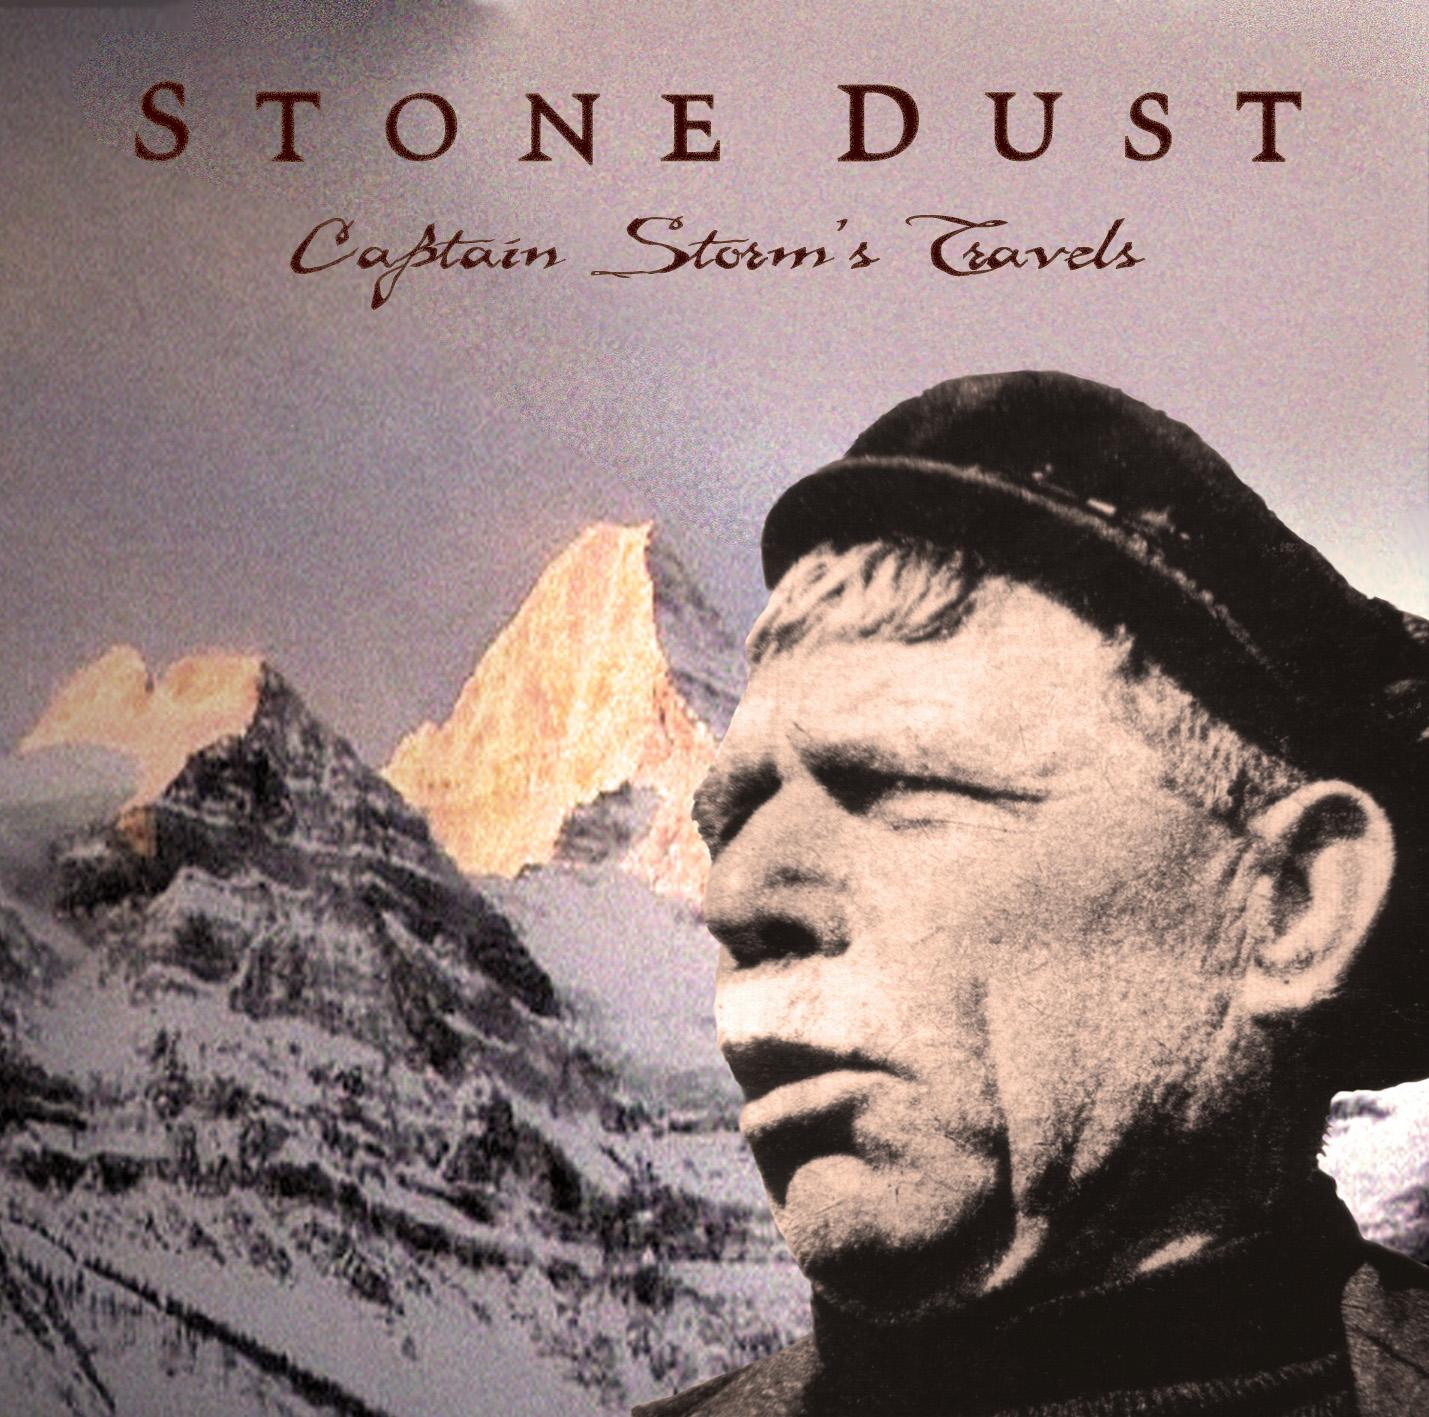 Stone Dust - Captain Storm's Travels CD-productie